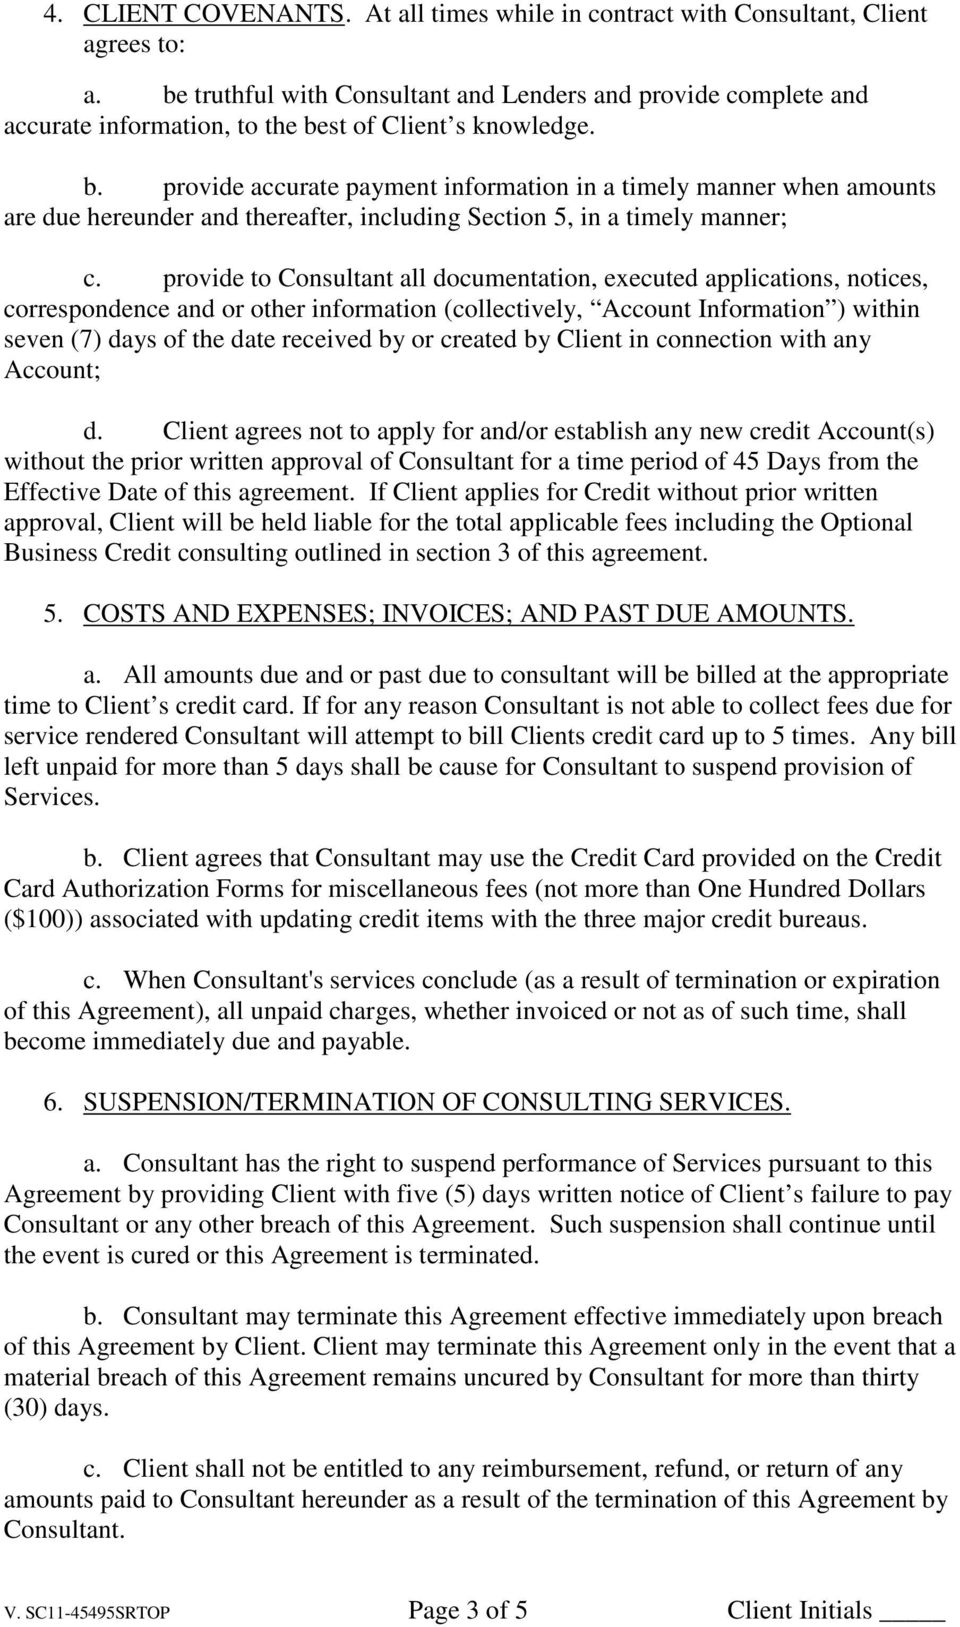 SEED CAPITAL CORP BUSINESS CONSULTING SERVICES AGREEMENT - PDF